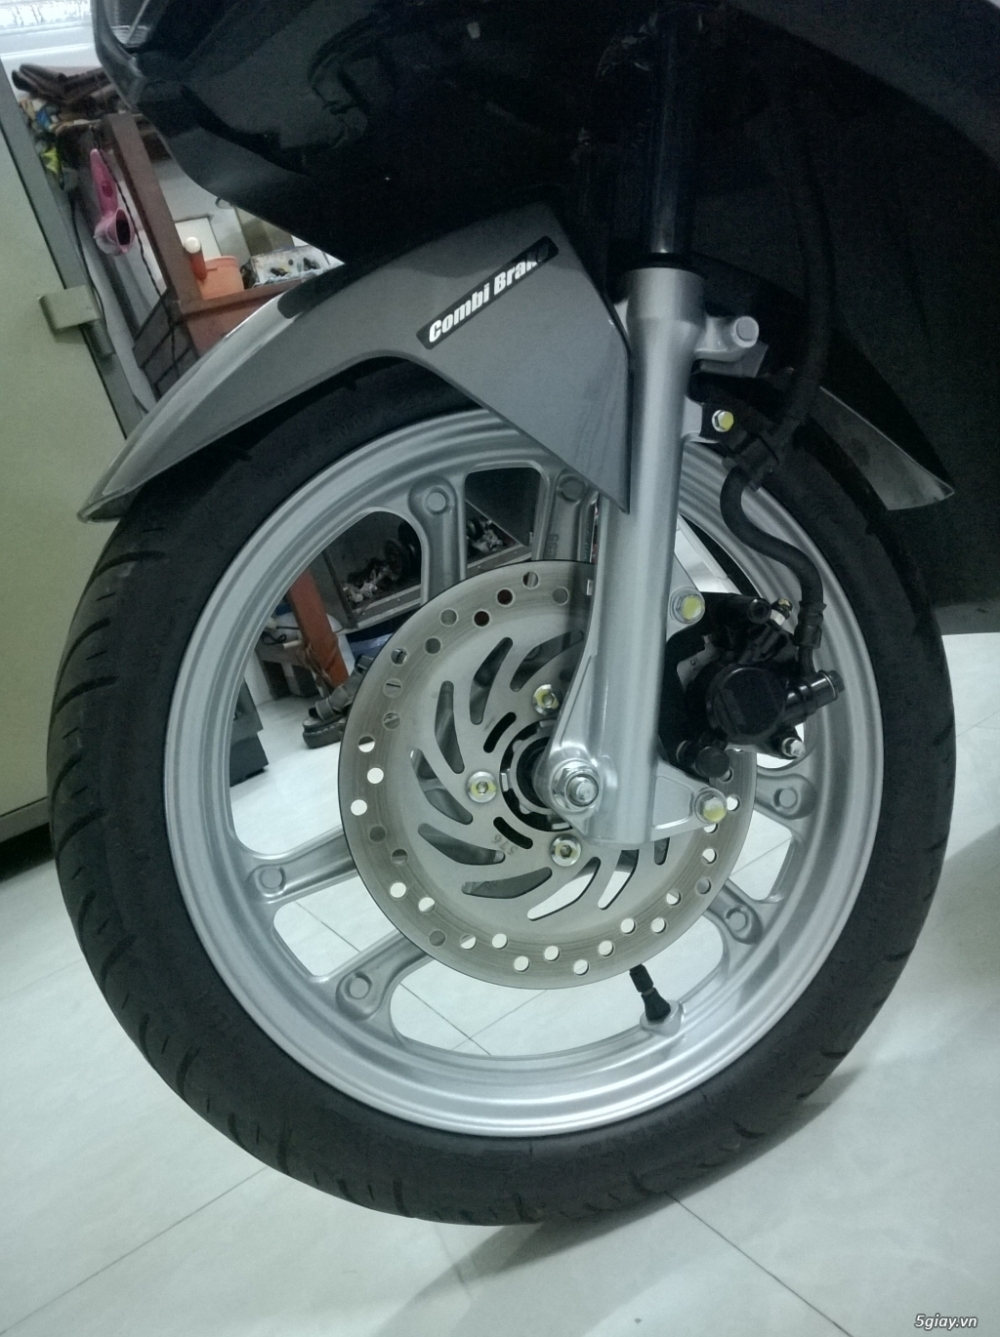 Air Blade FI 125cc moi 99 bien so VIP ngu quy 33333 - 17